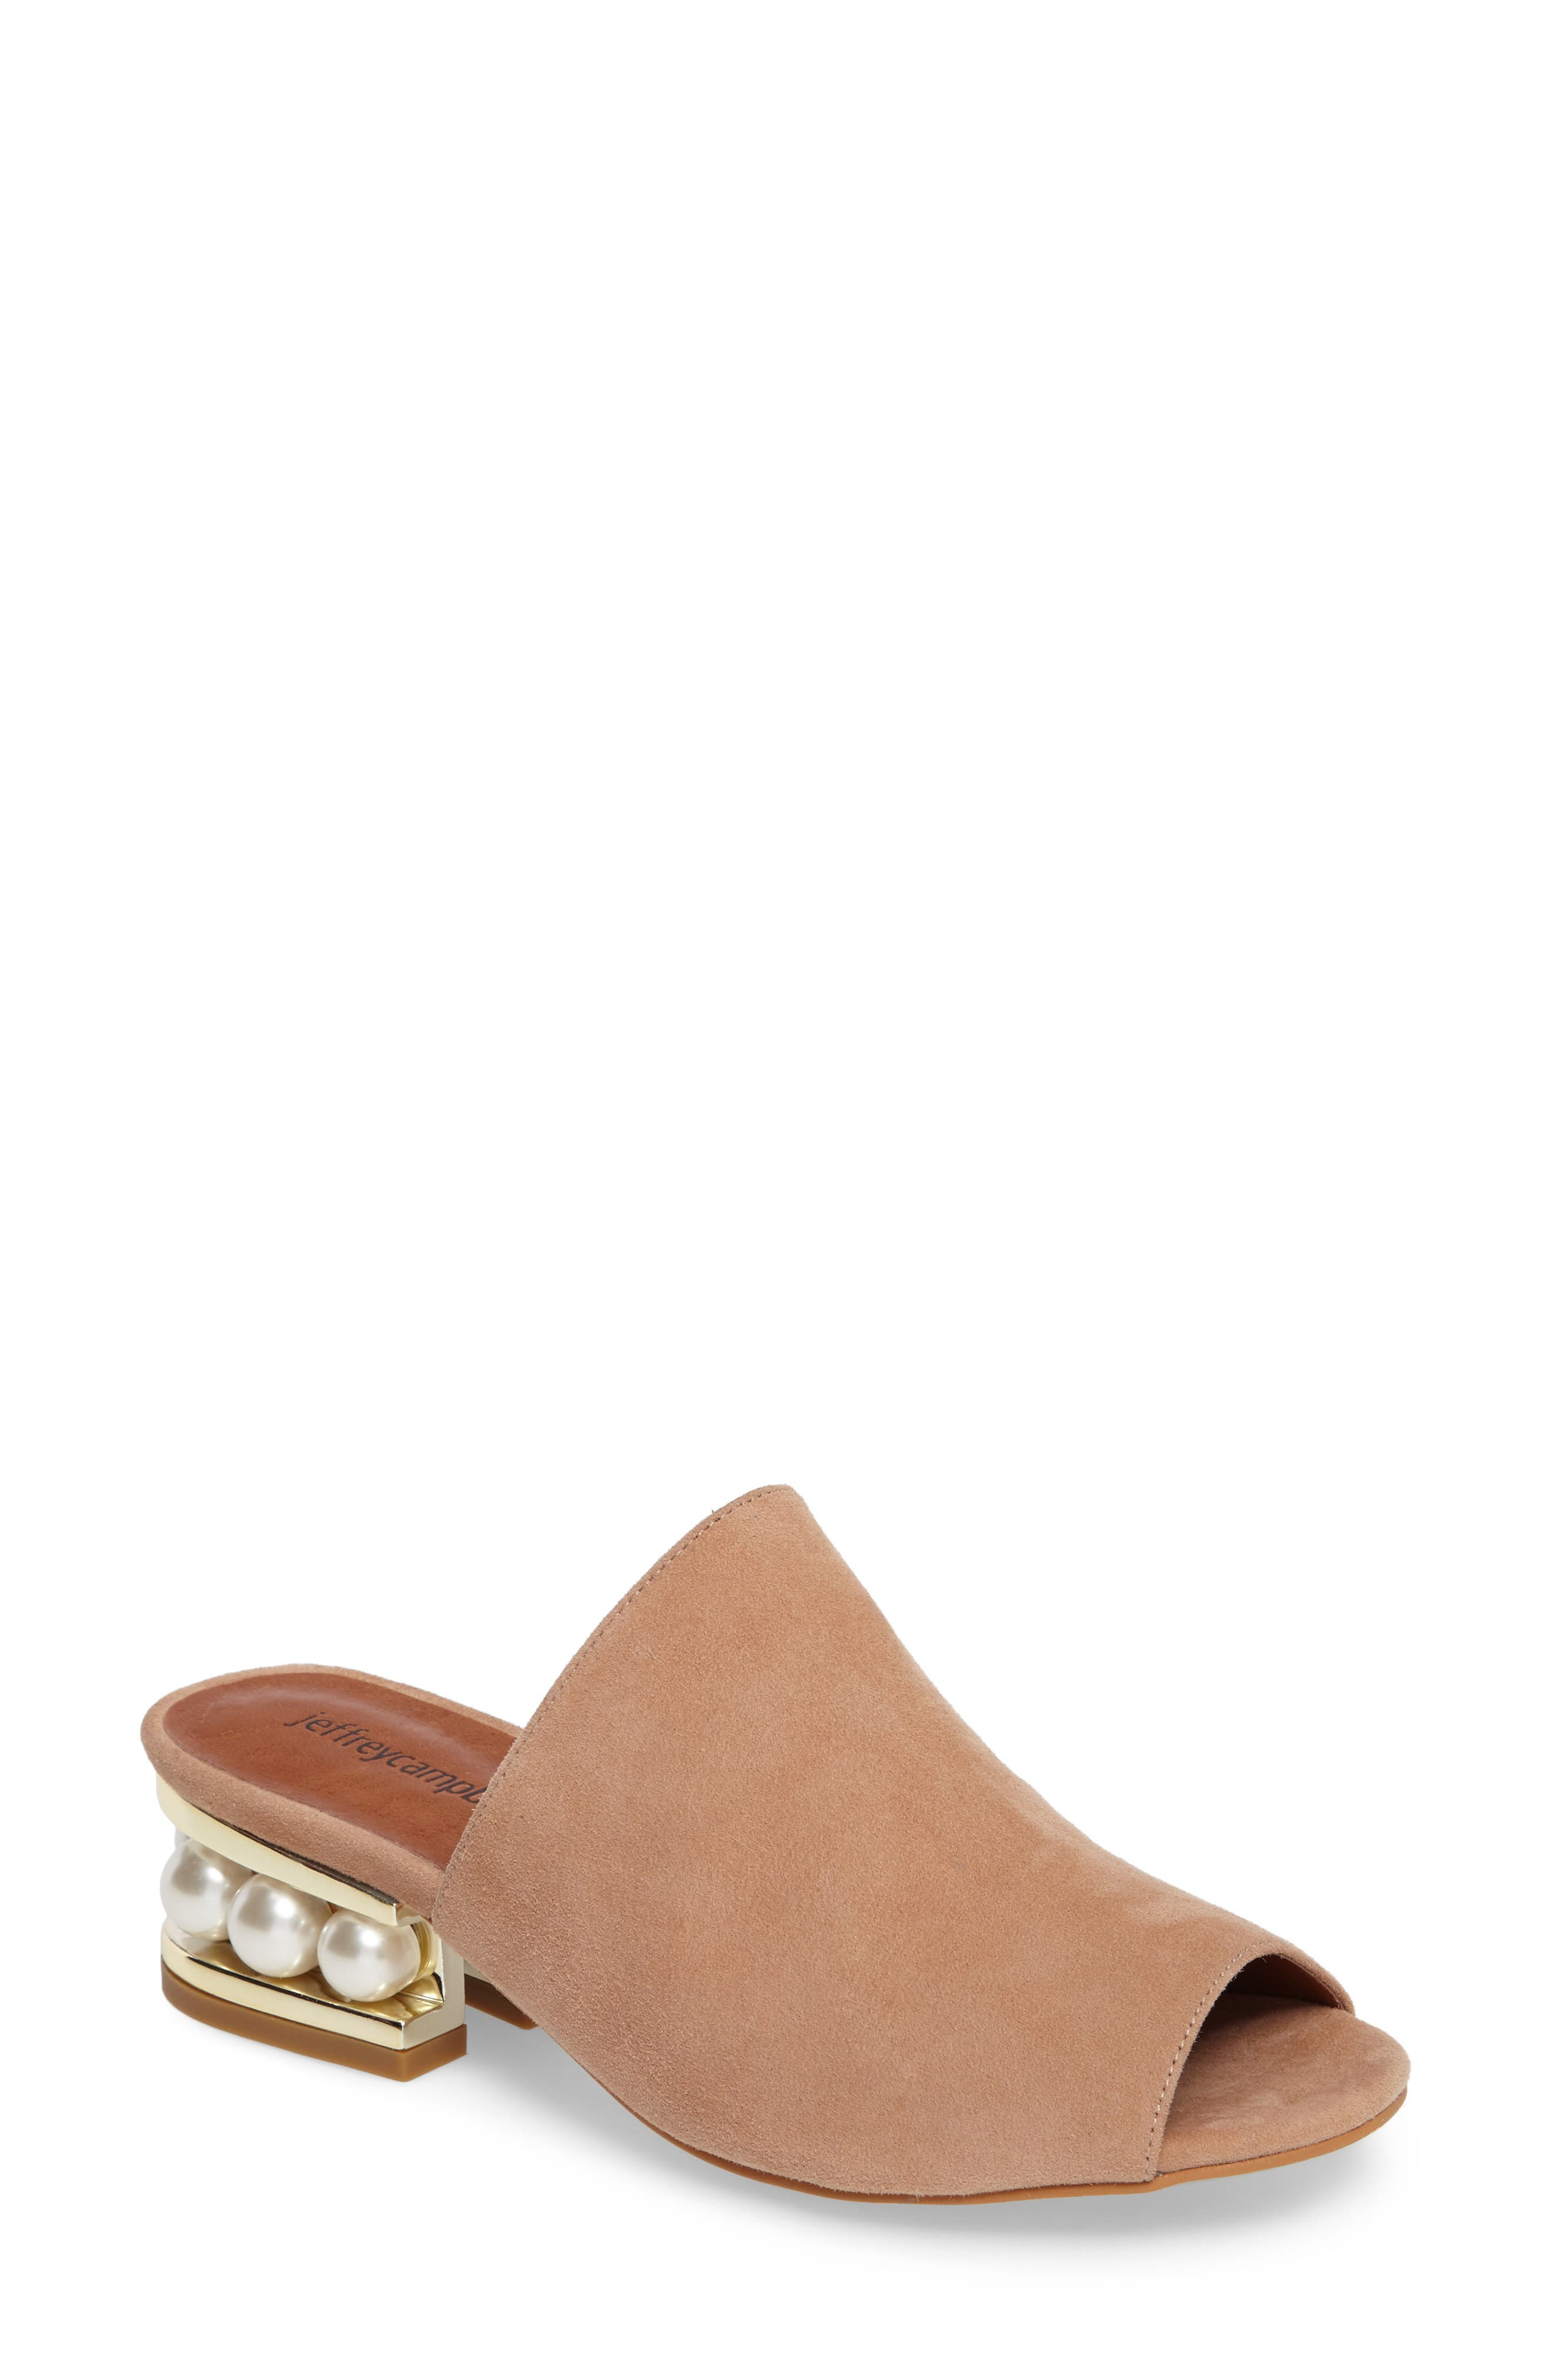 Main Image - Jeffrey Campbell Arcita Slide Sandal (Women)